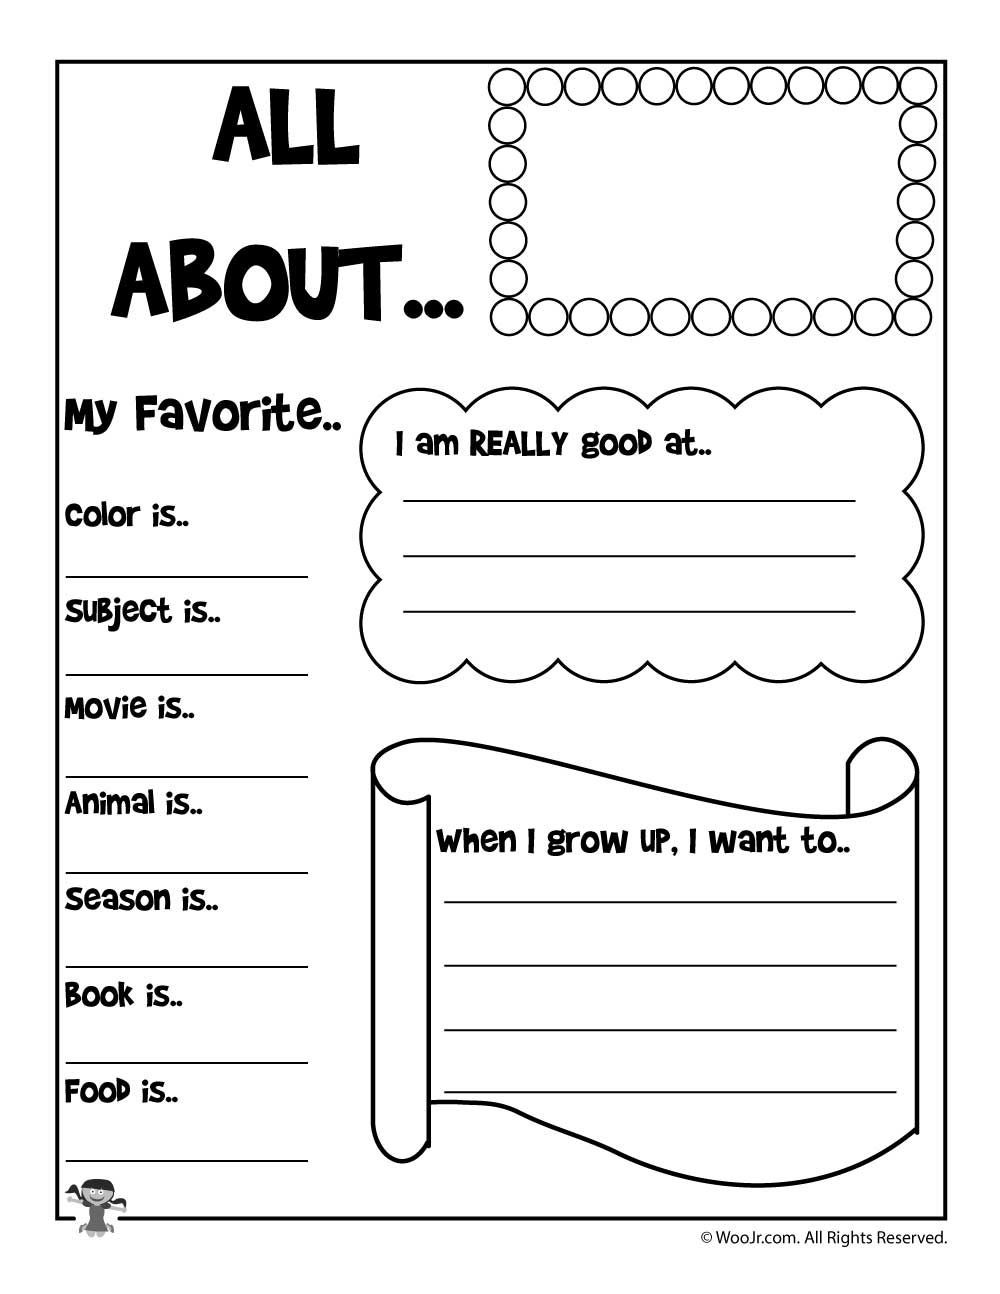 Making Inferences Worksheets 4th Grade Printable About Worksheets with All 4th Grade Work